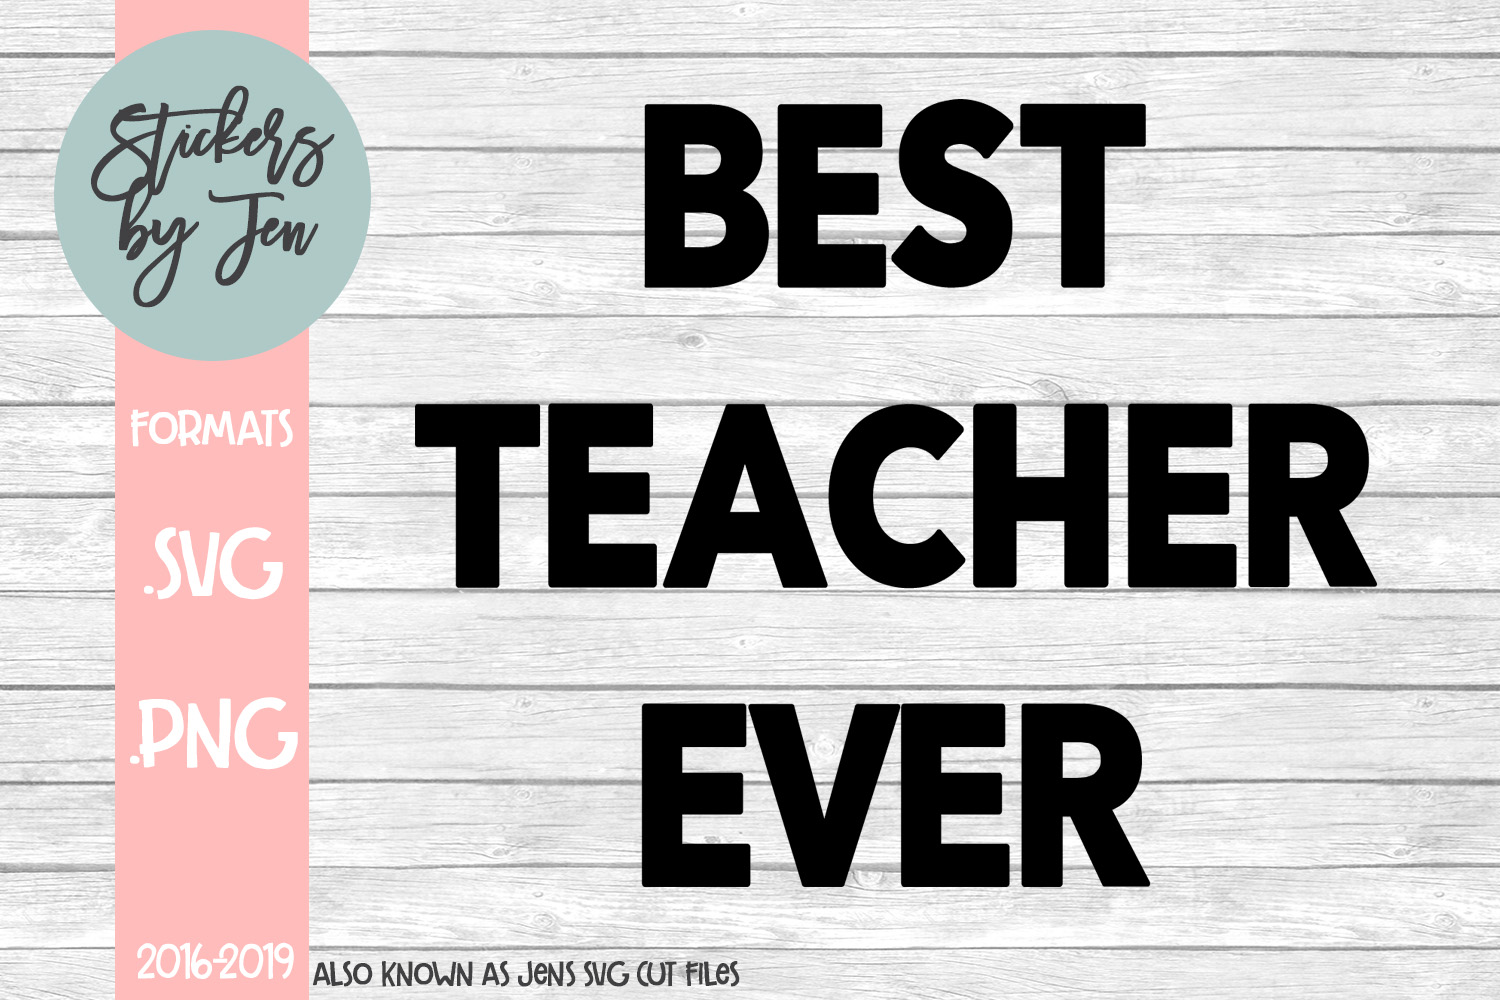 Best Teacher Ever SVG Cut File example image 1